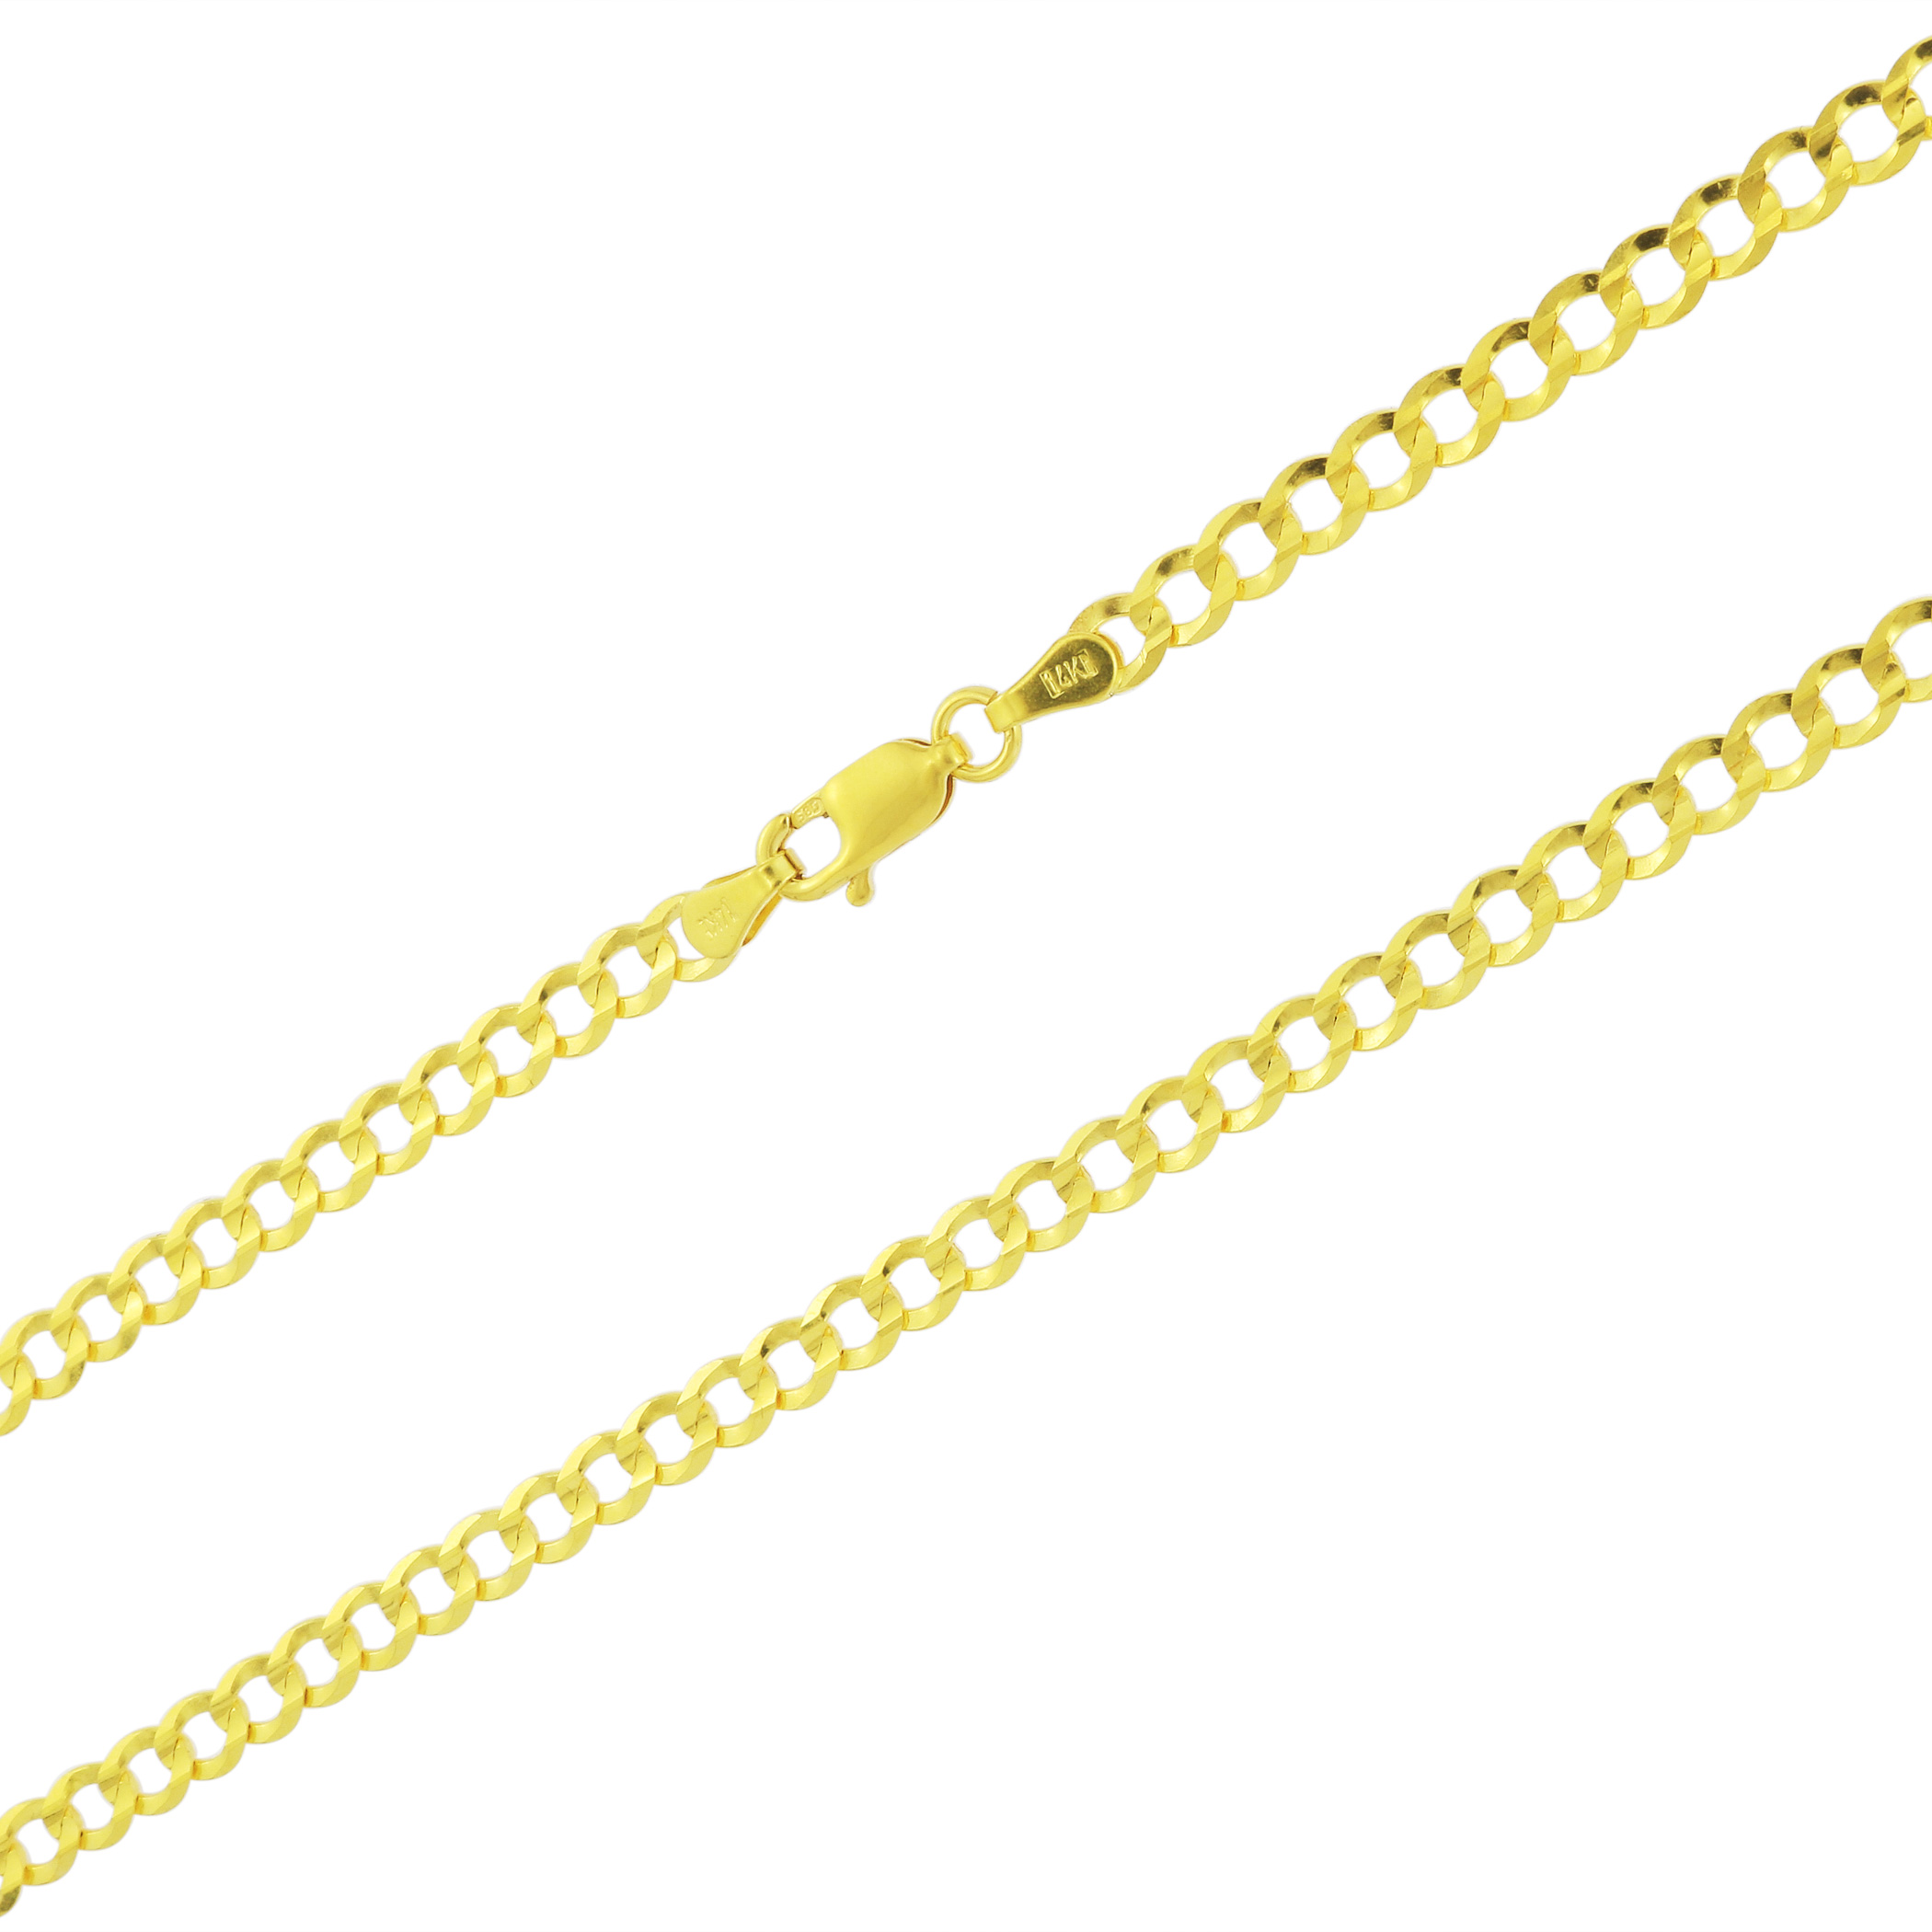 14K-Solid-Yellow-Gold-4mm-Cuban-Curb-Chain-Link-Bracelet-Lobster-Clasp-7-034-8-034-9-034 thumbnail 17